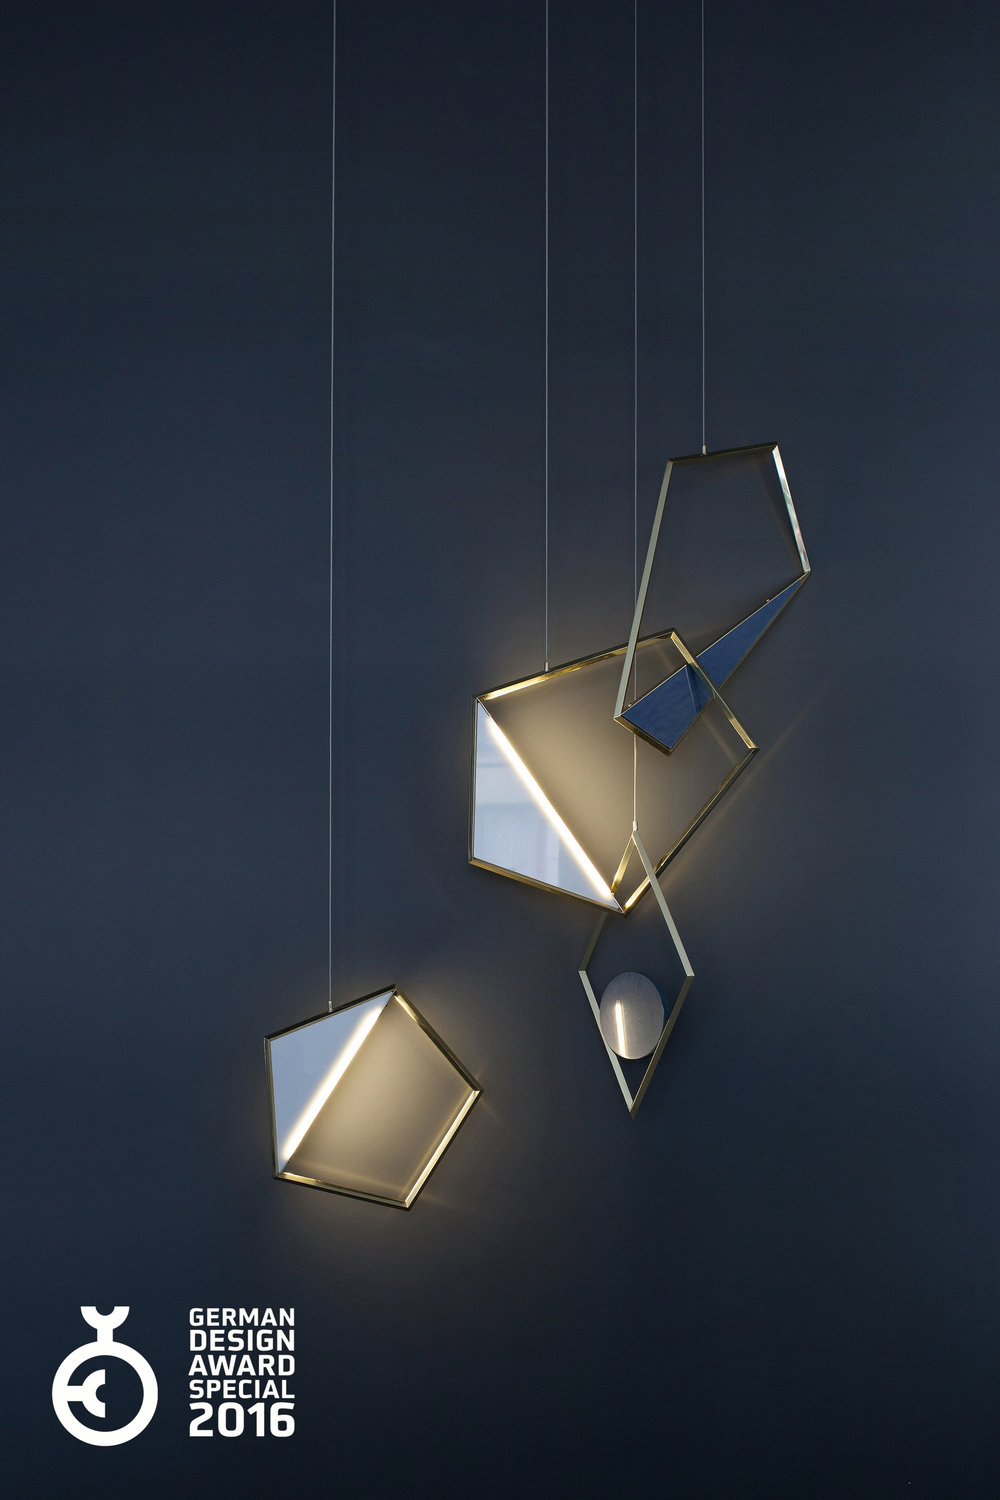 tangle-light_lighting-design_coordination-berlin_01.jpg